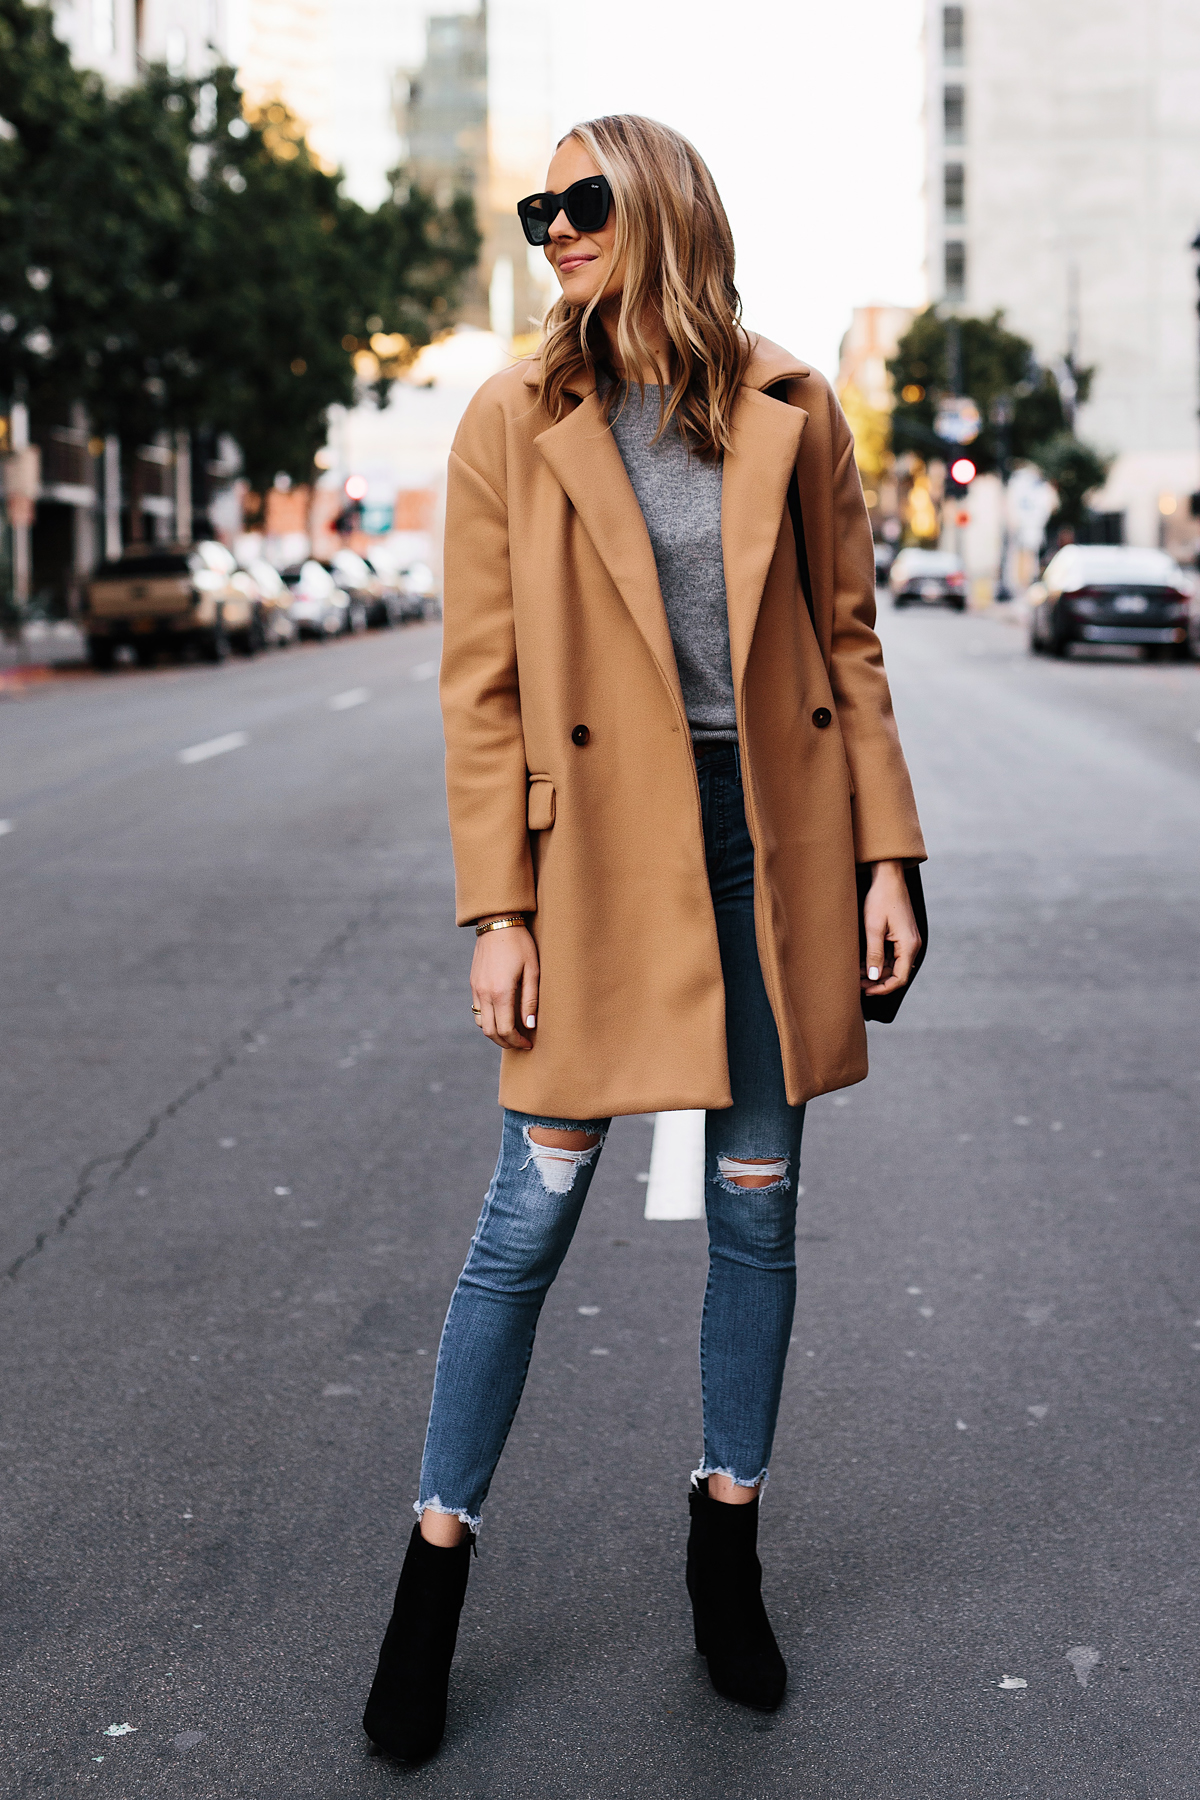 Blonde Woman Wearing Camel Coat Grey Sweater Denim Ripped Skinny Jeans Black Booties Outfit Fashion Jackson San Diego Fashion Blogger Street Style